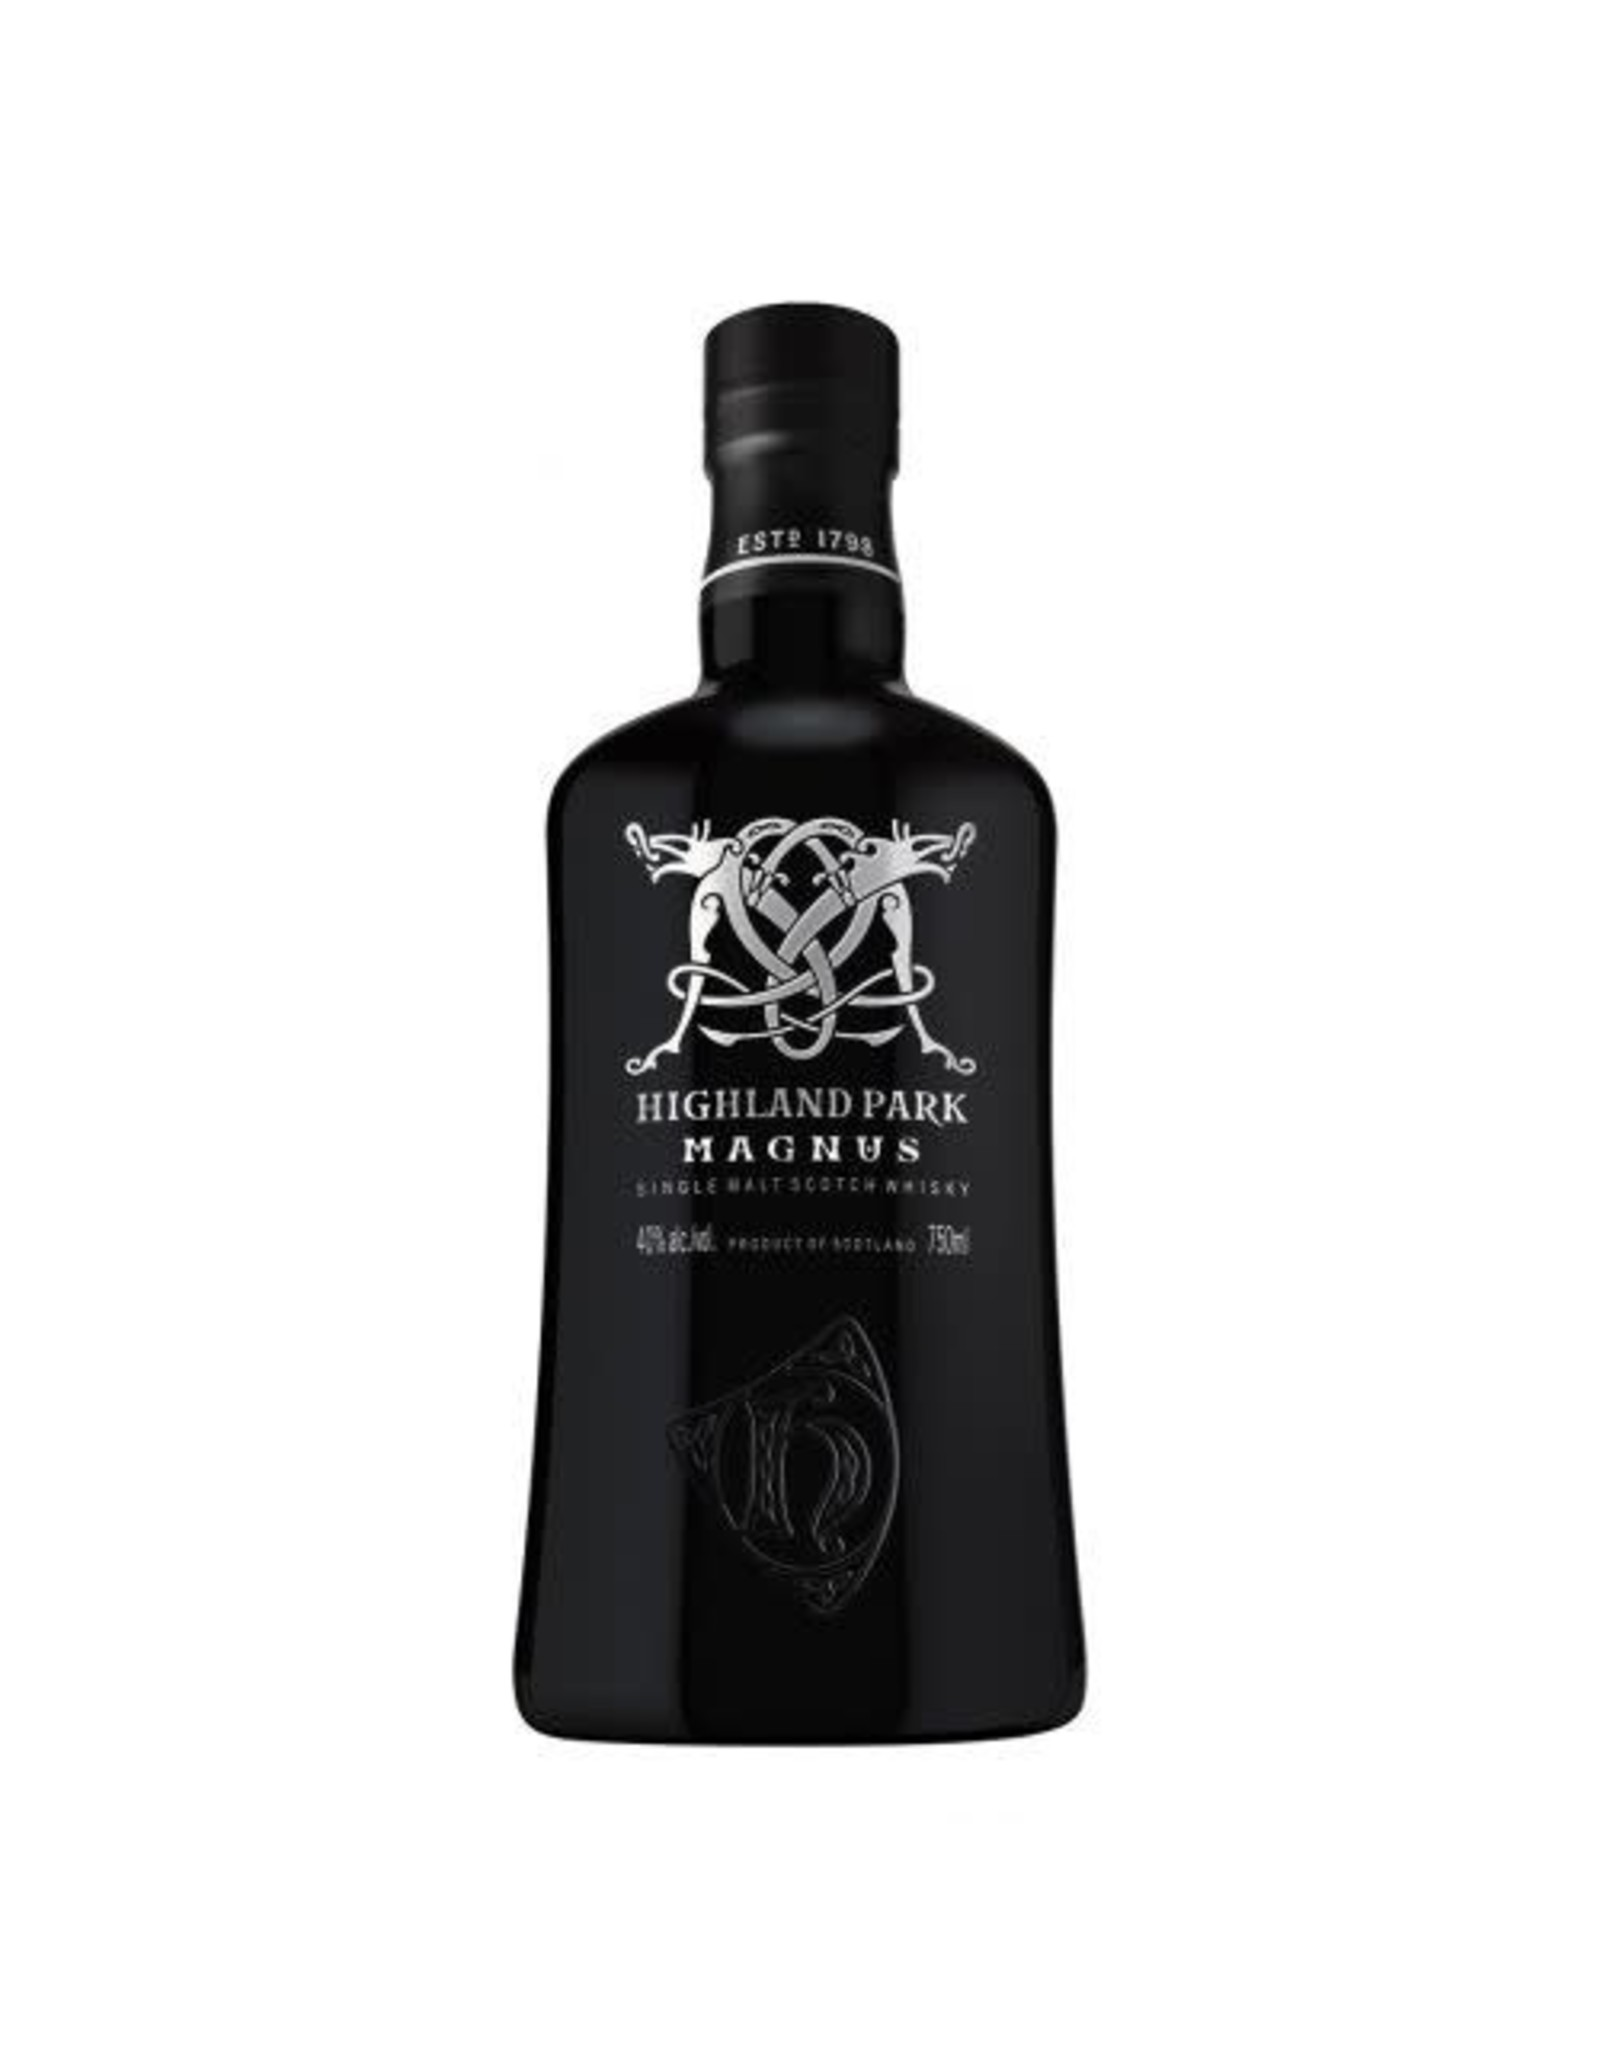 HIGHLAND PARK MAGNUS SINGLE MALT 750ML